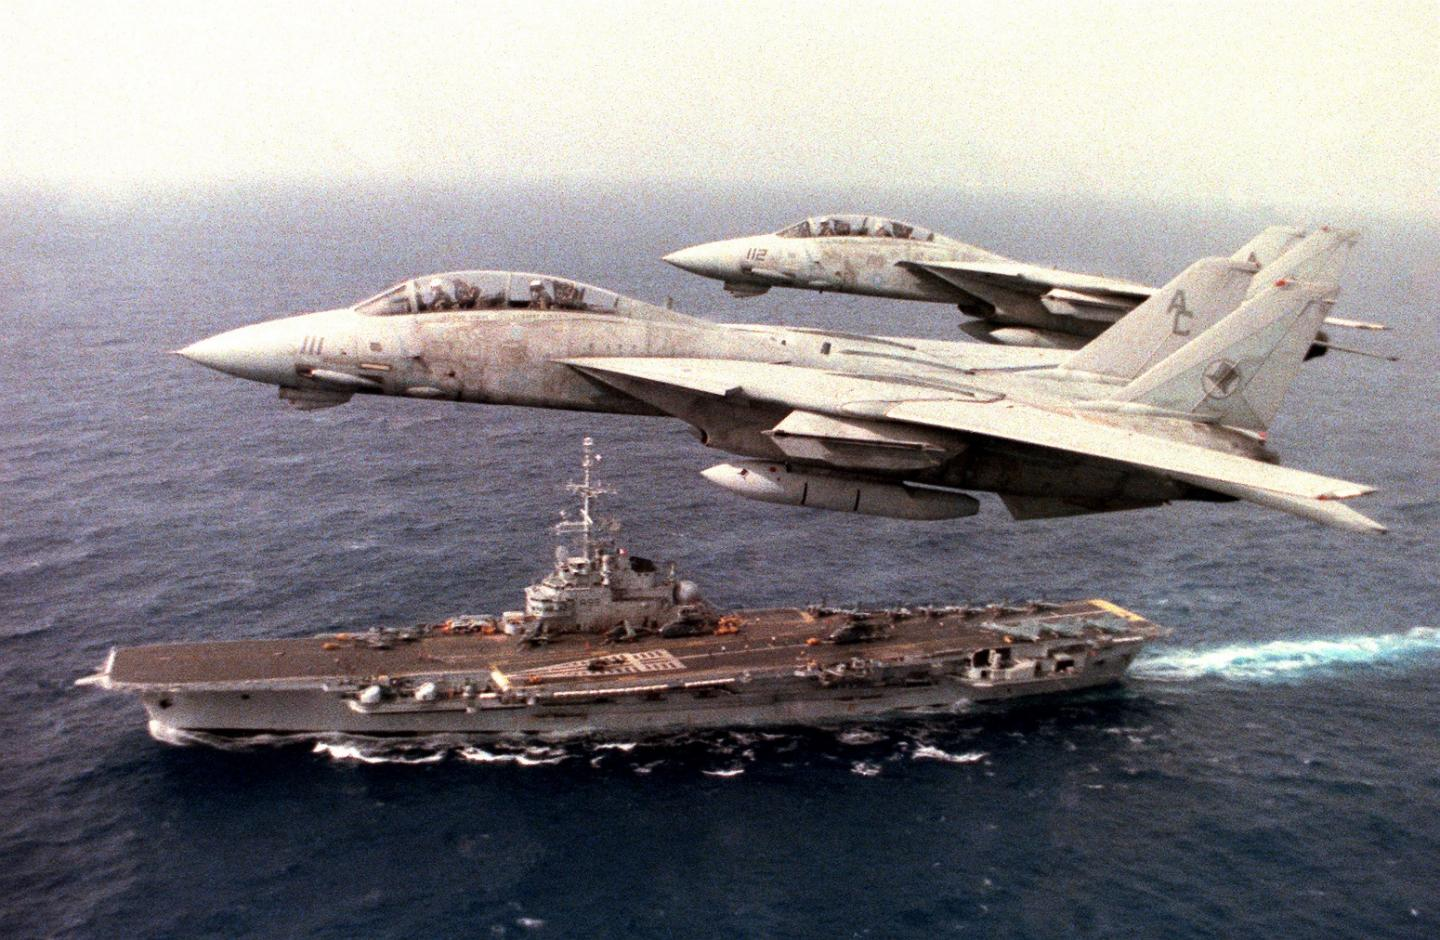 This Is the Story of the Longest Serving F-14 Tomcat in U.S. Navy History